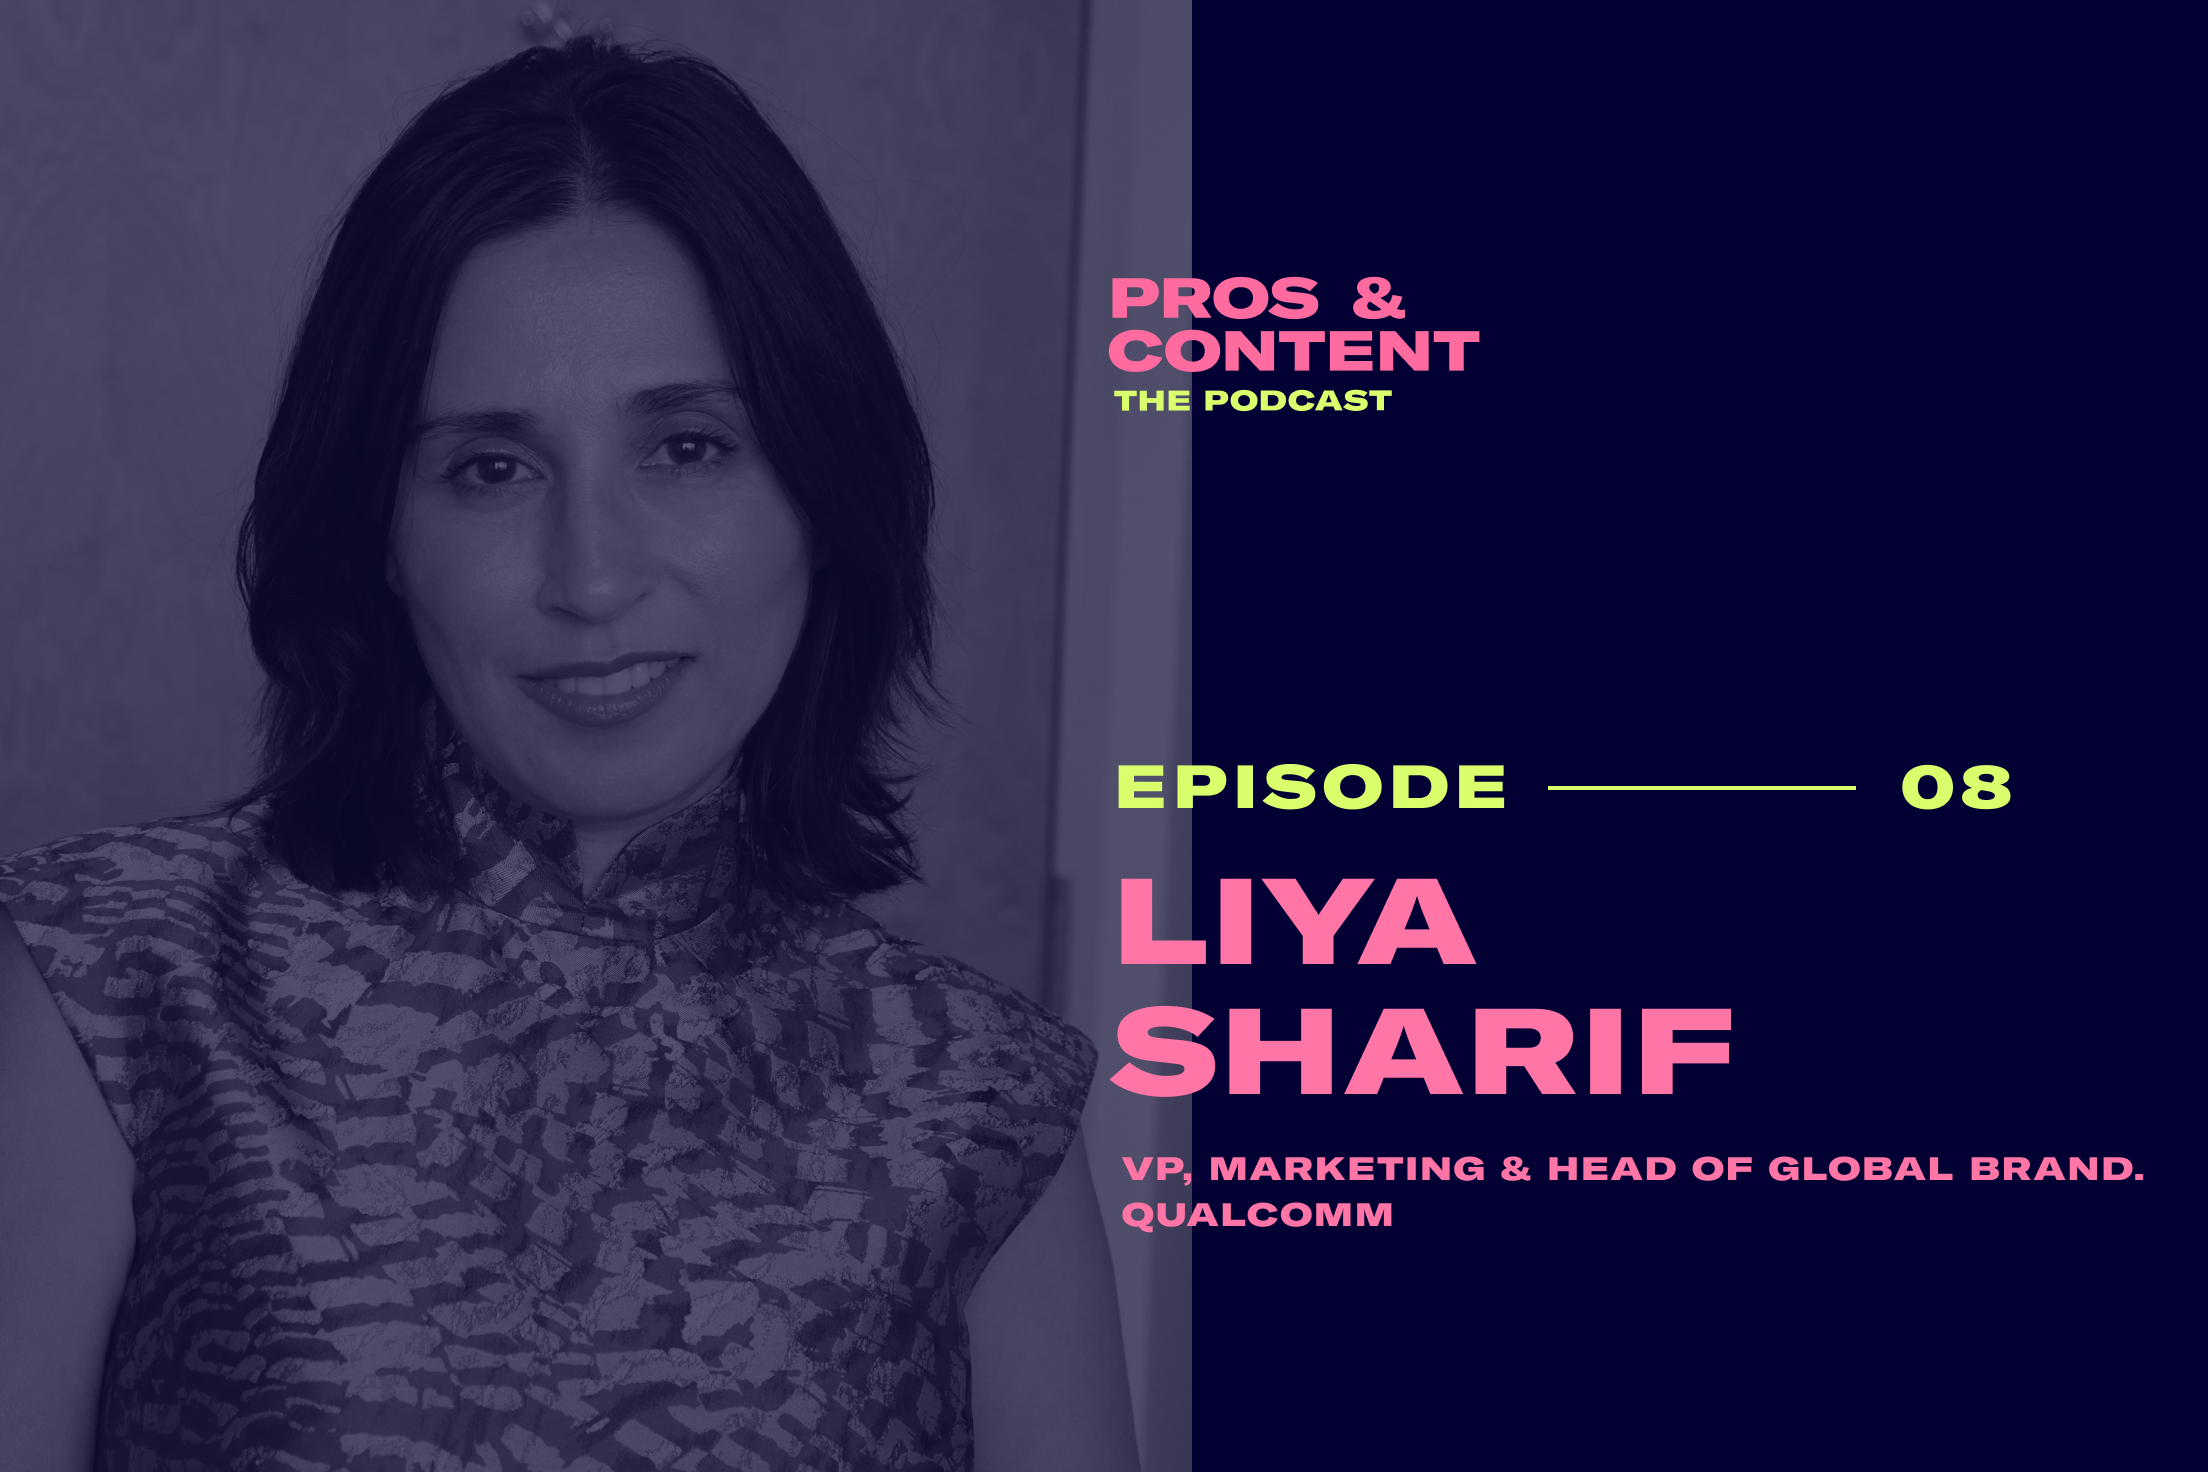 Pros & Content Podcast: Liya Sharif On The Discipline Of A Content Plan